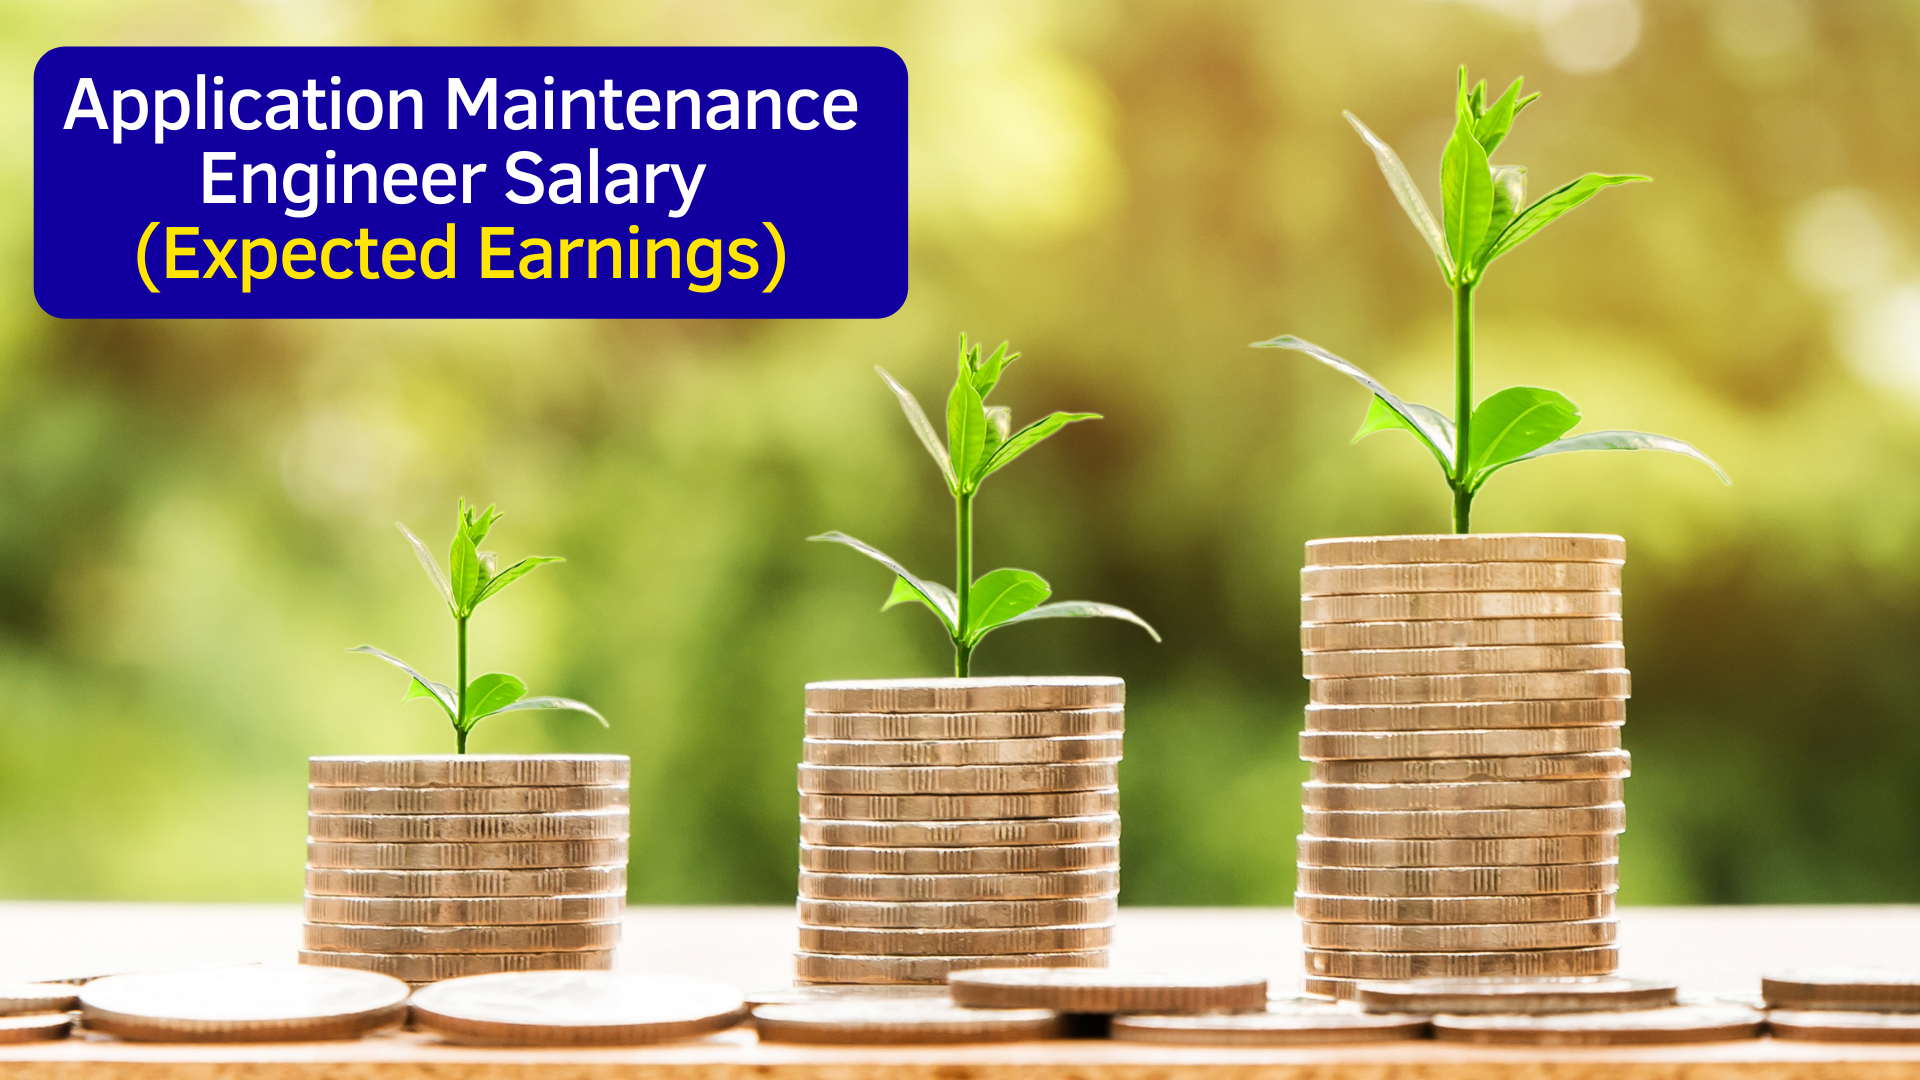 Application Maintenance Engineer Salary (Expected Earnings)